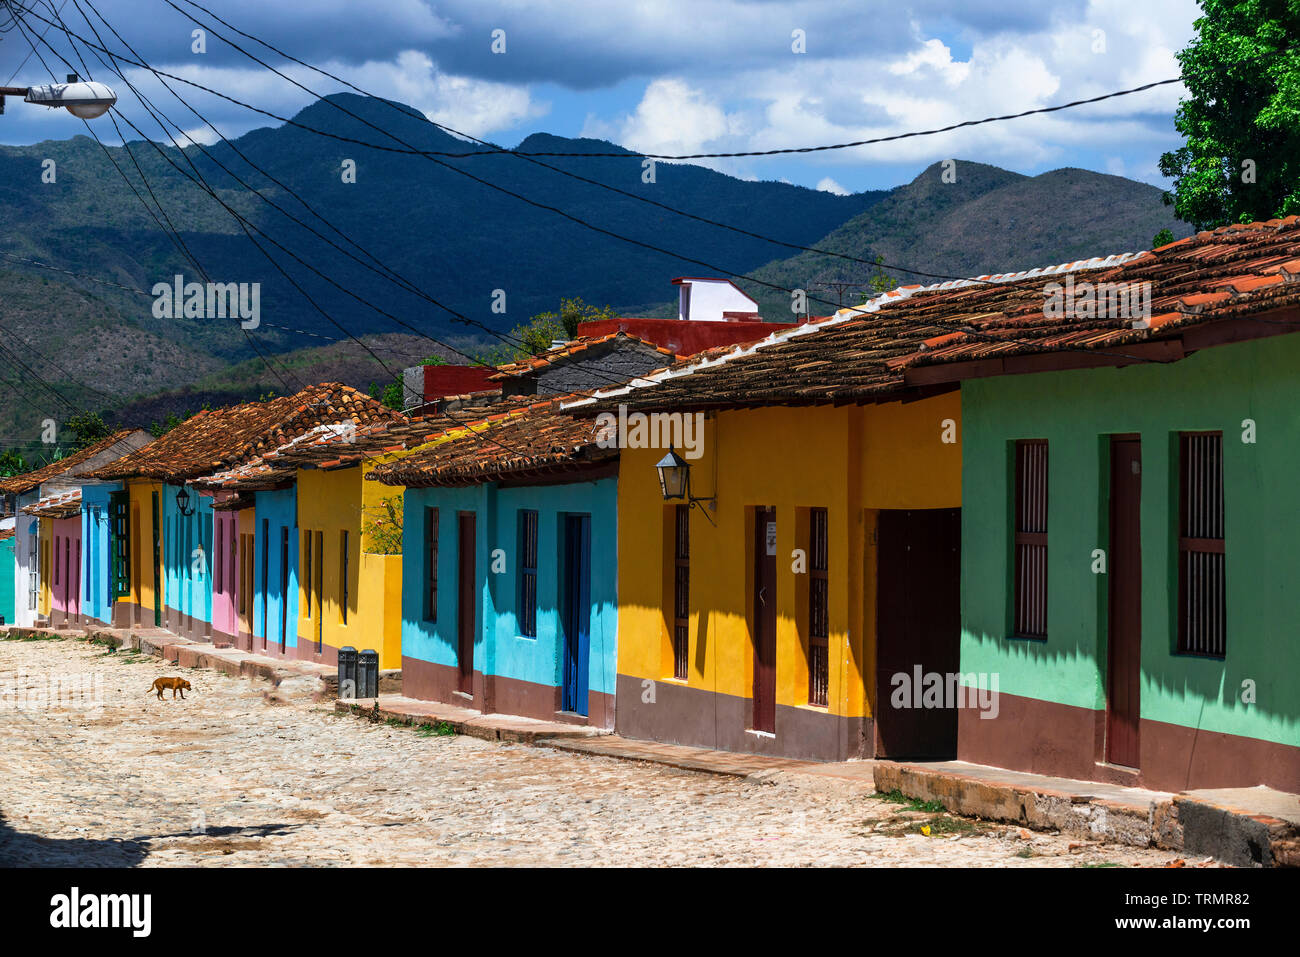 Colourful houses in the old colonial town of Trinidad, a UNESCO World Heritage Site, in Sancti Spiritus Province, Cuba, Caribbean Stock Photo